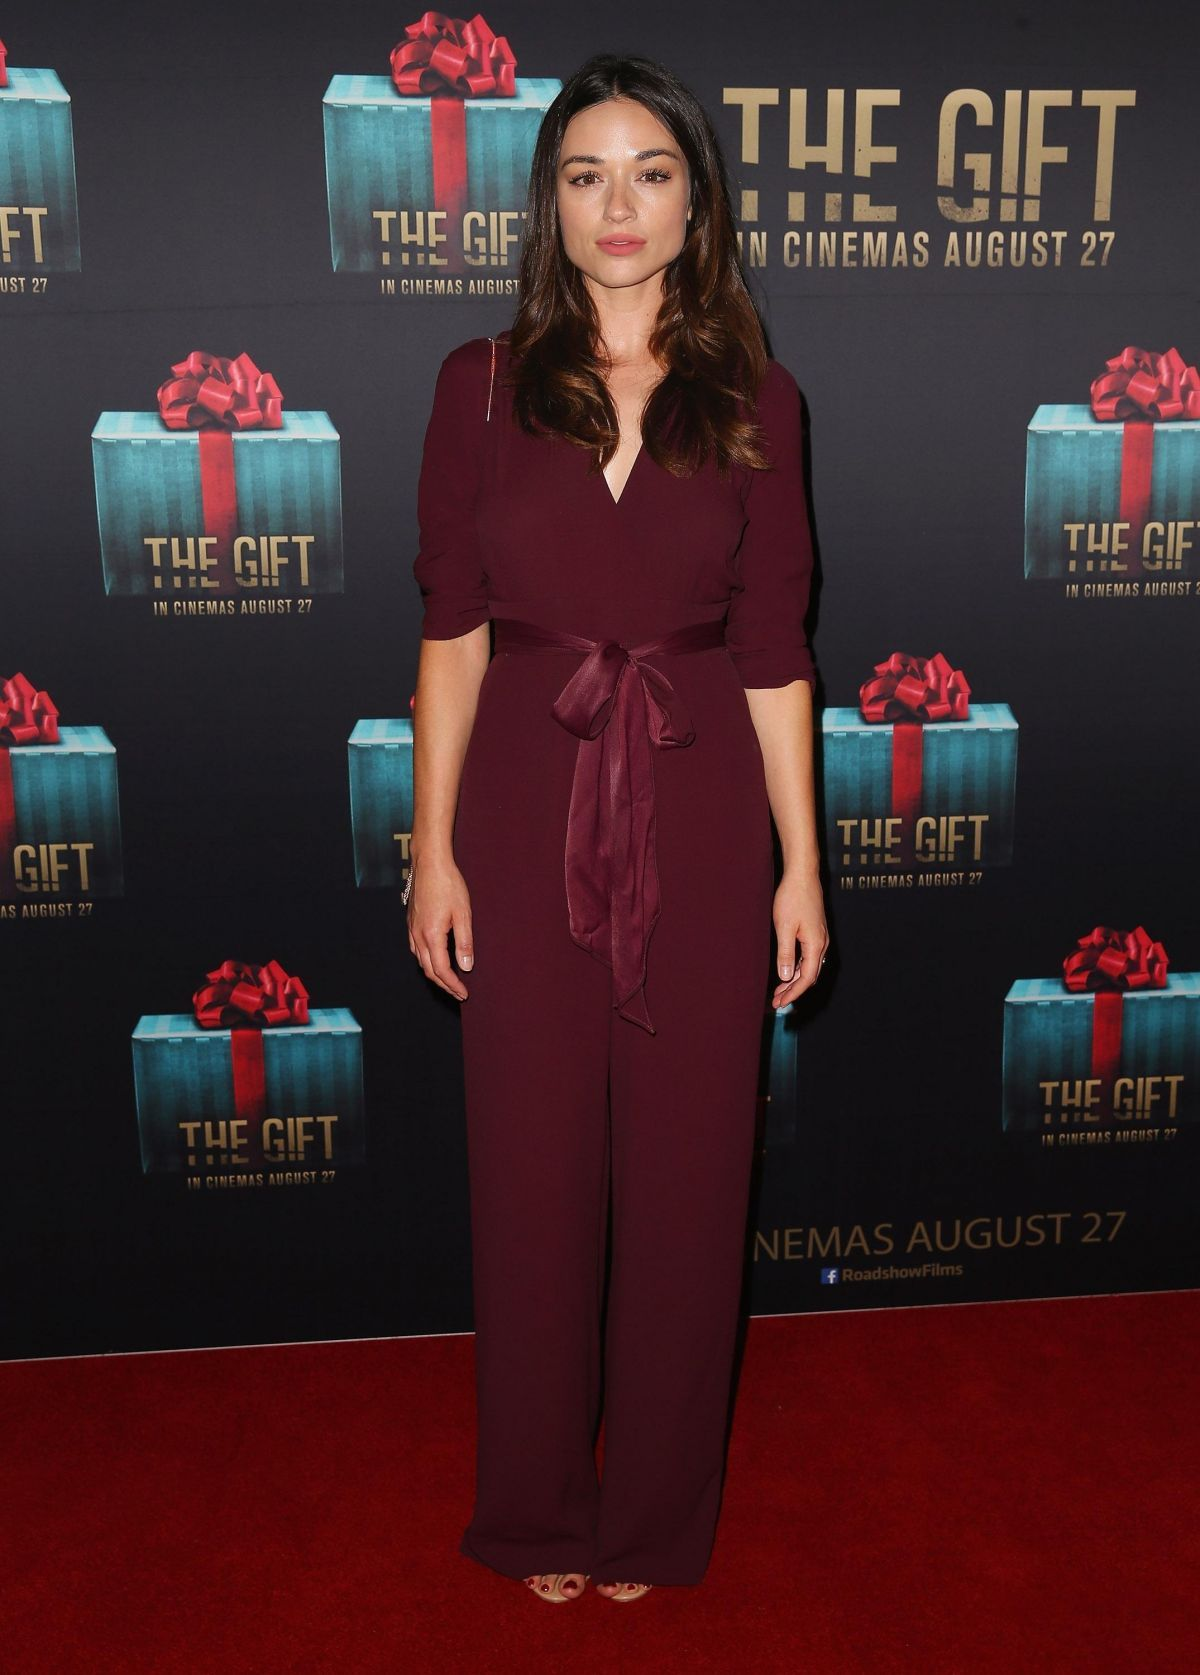 Crystal Reed at The Gift Premiere in Sydney